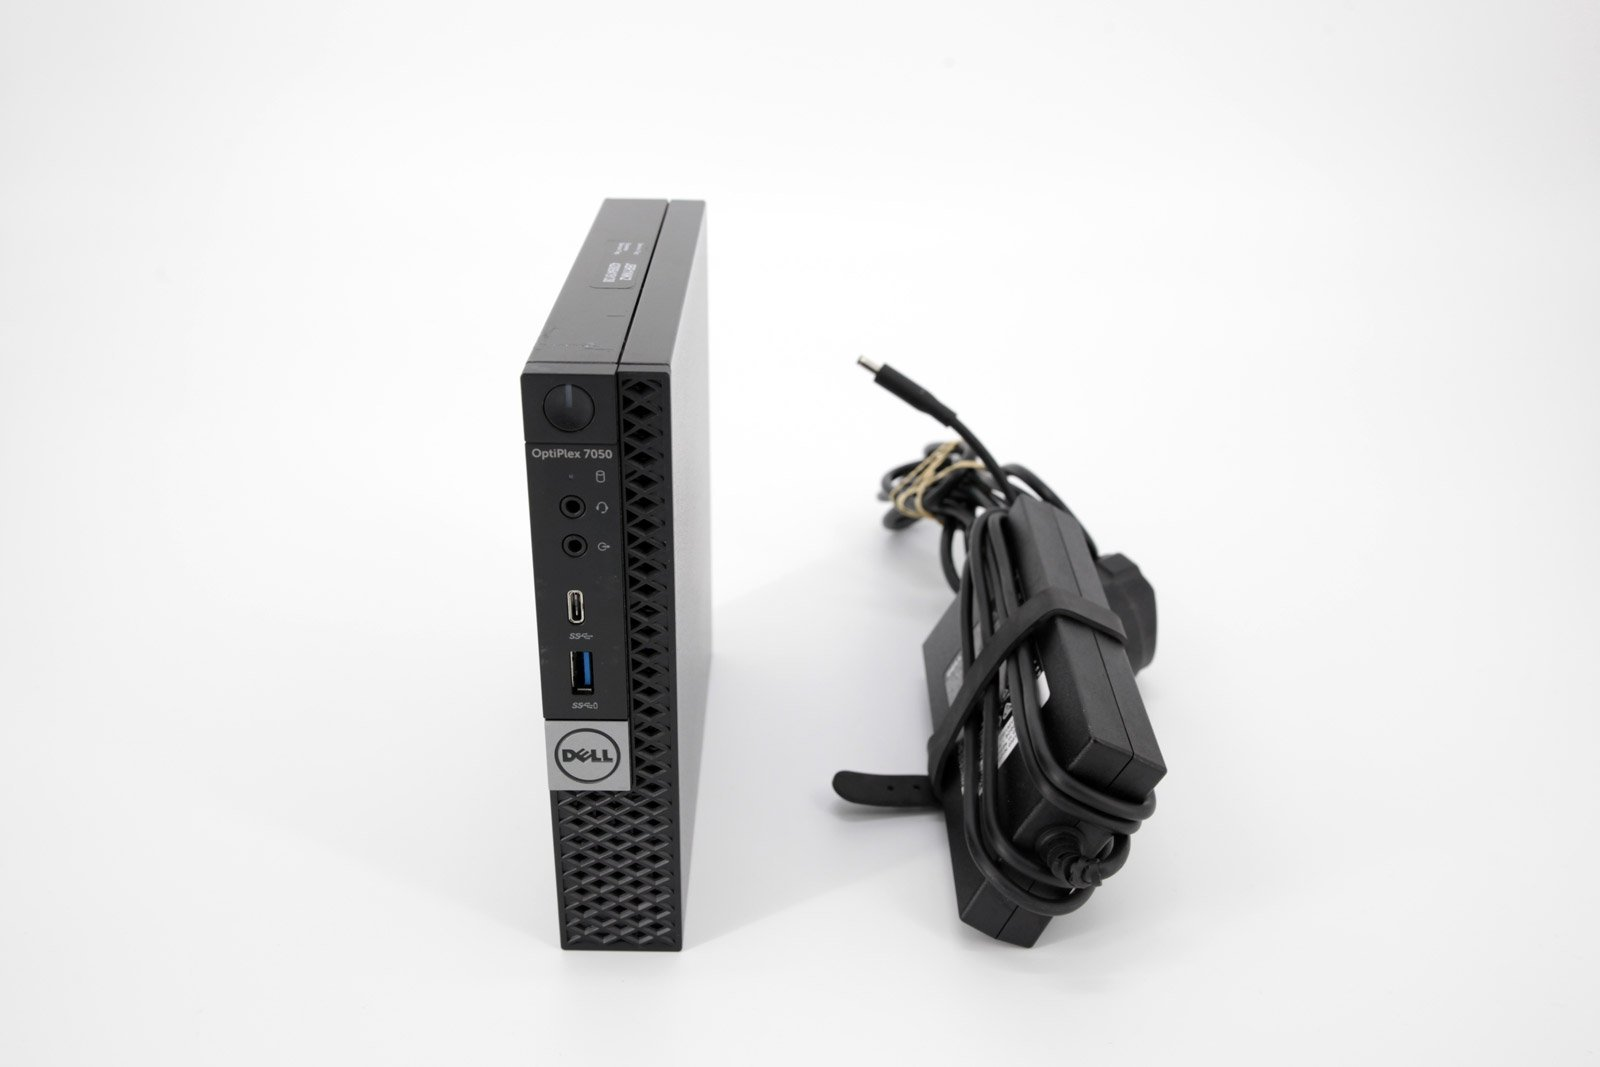 Dell Optiplex 7050 Desktop Micro PC: i5 6th Gen, 8GB RAM, 256GB SSD, Warranty - CruiseTech